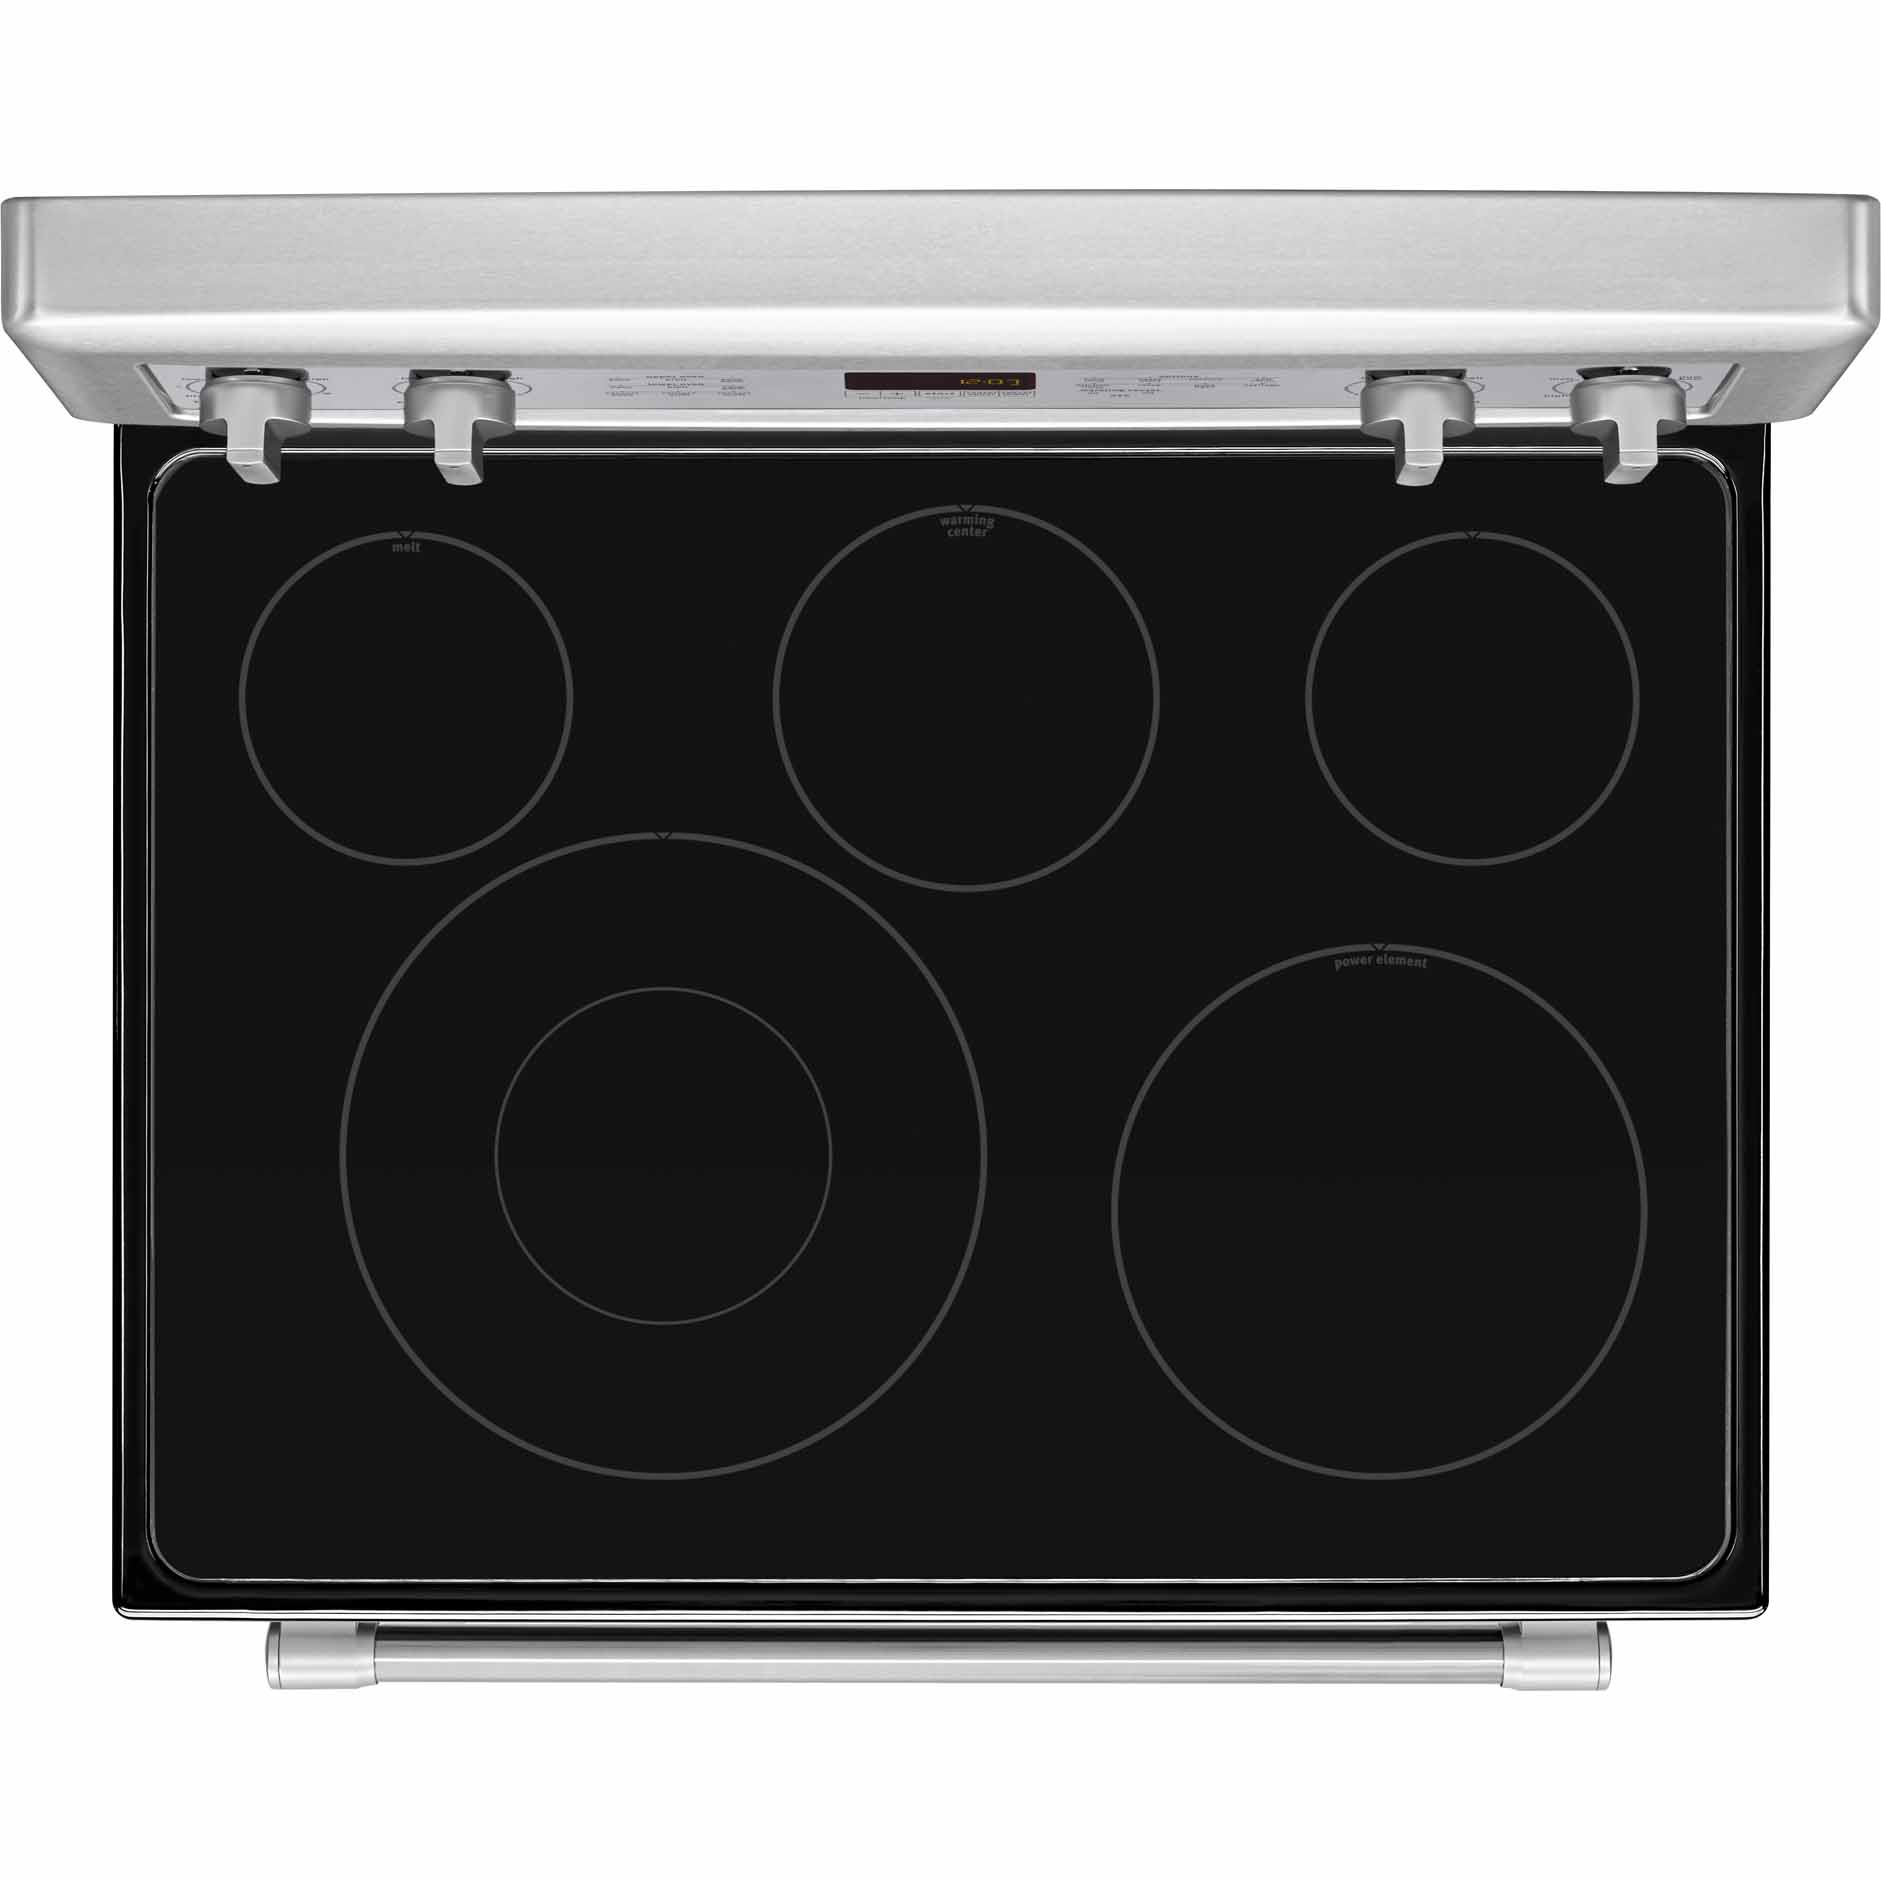 Maytag MET8720DS 6.7 cu. ft. Electric Double-Oven Range - Stainless Steel